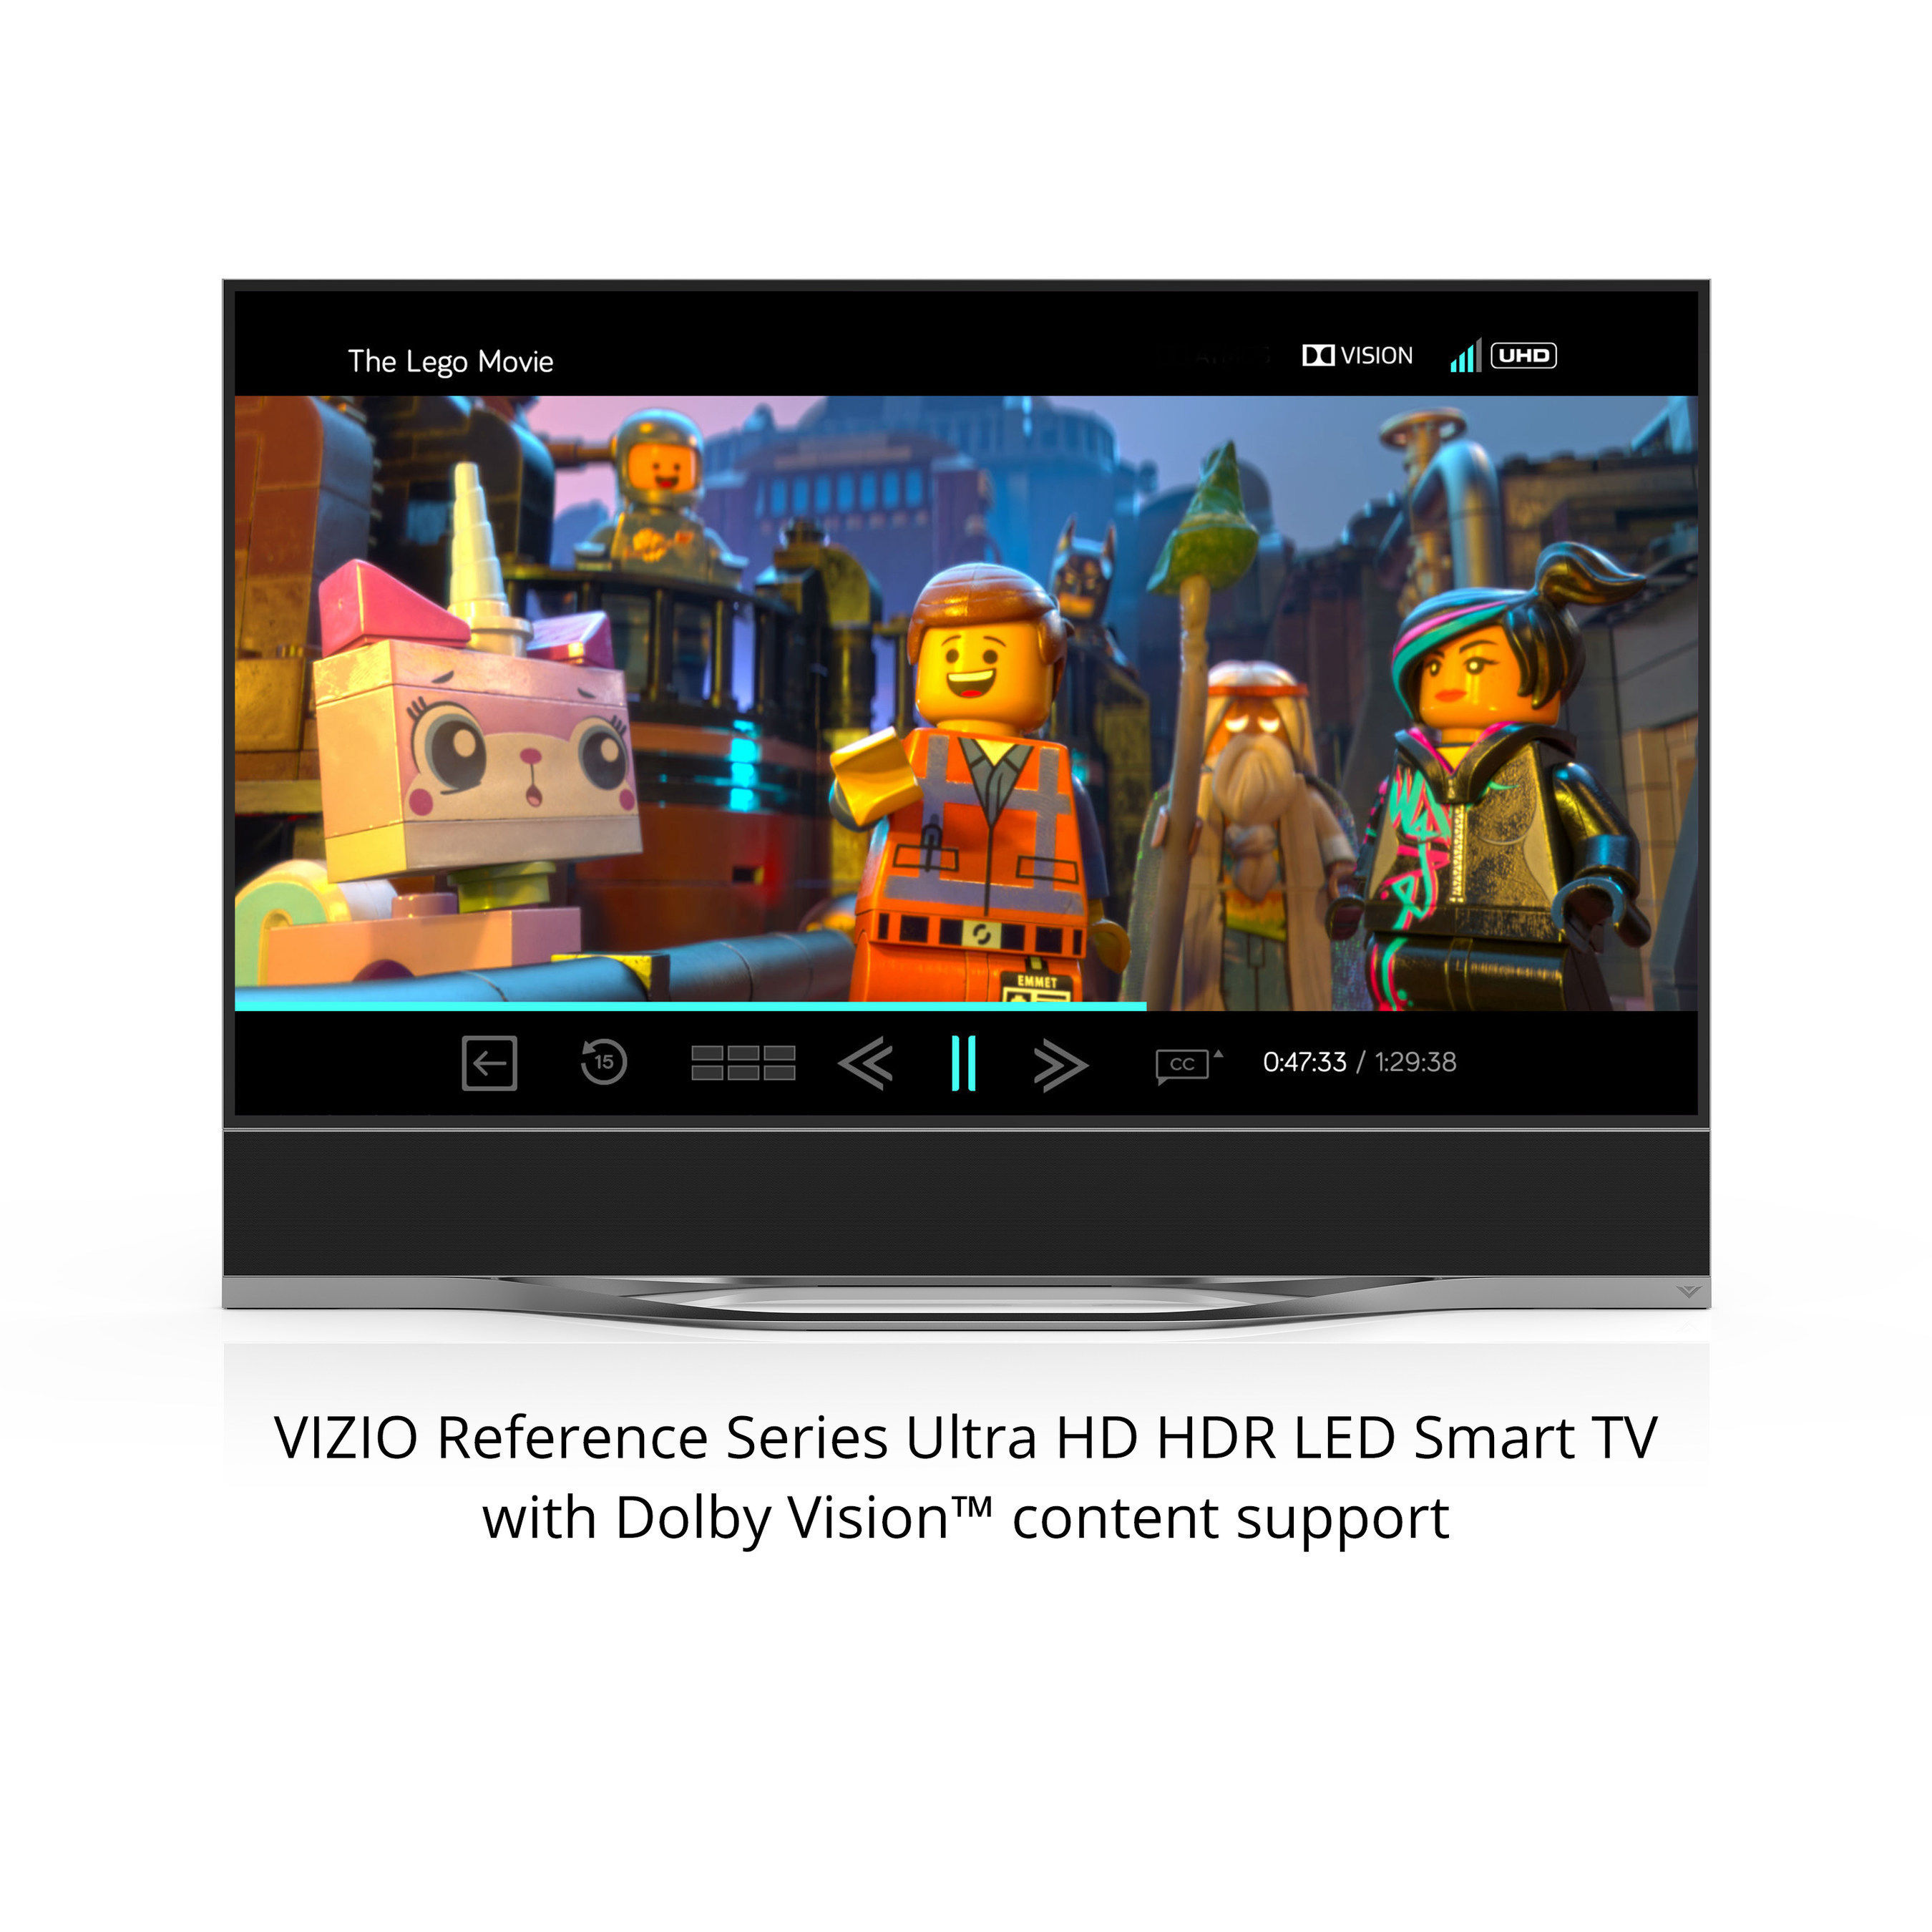 VIZIO Announces Pricing and Availability for Highly Anticipated Reference Series Collection Featuring Dolby Vision High Dynamic Range Support